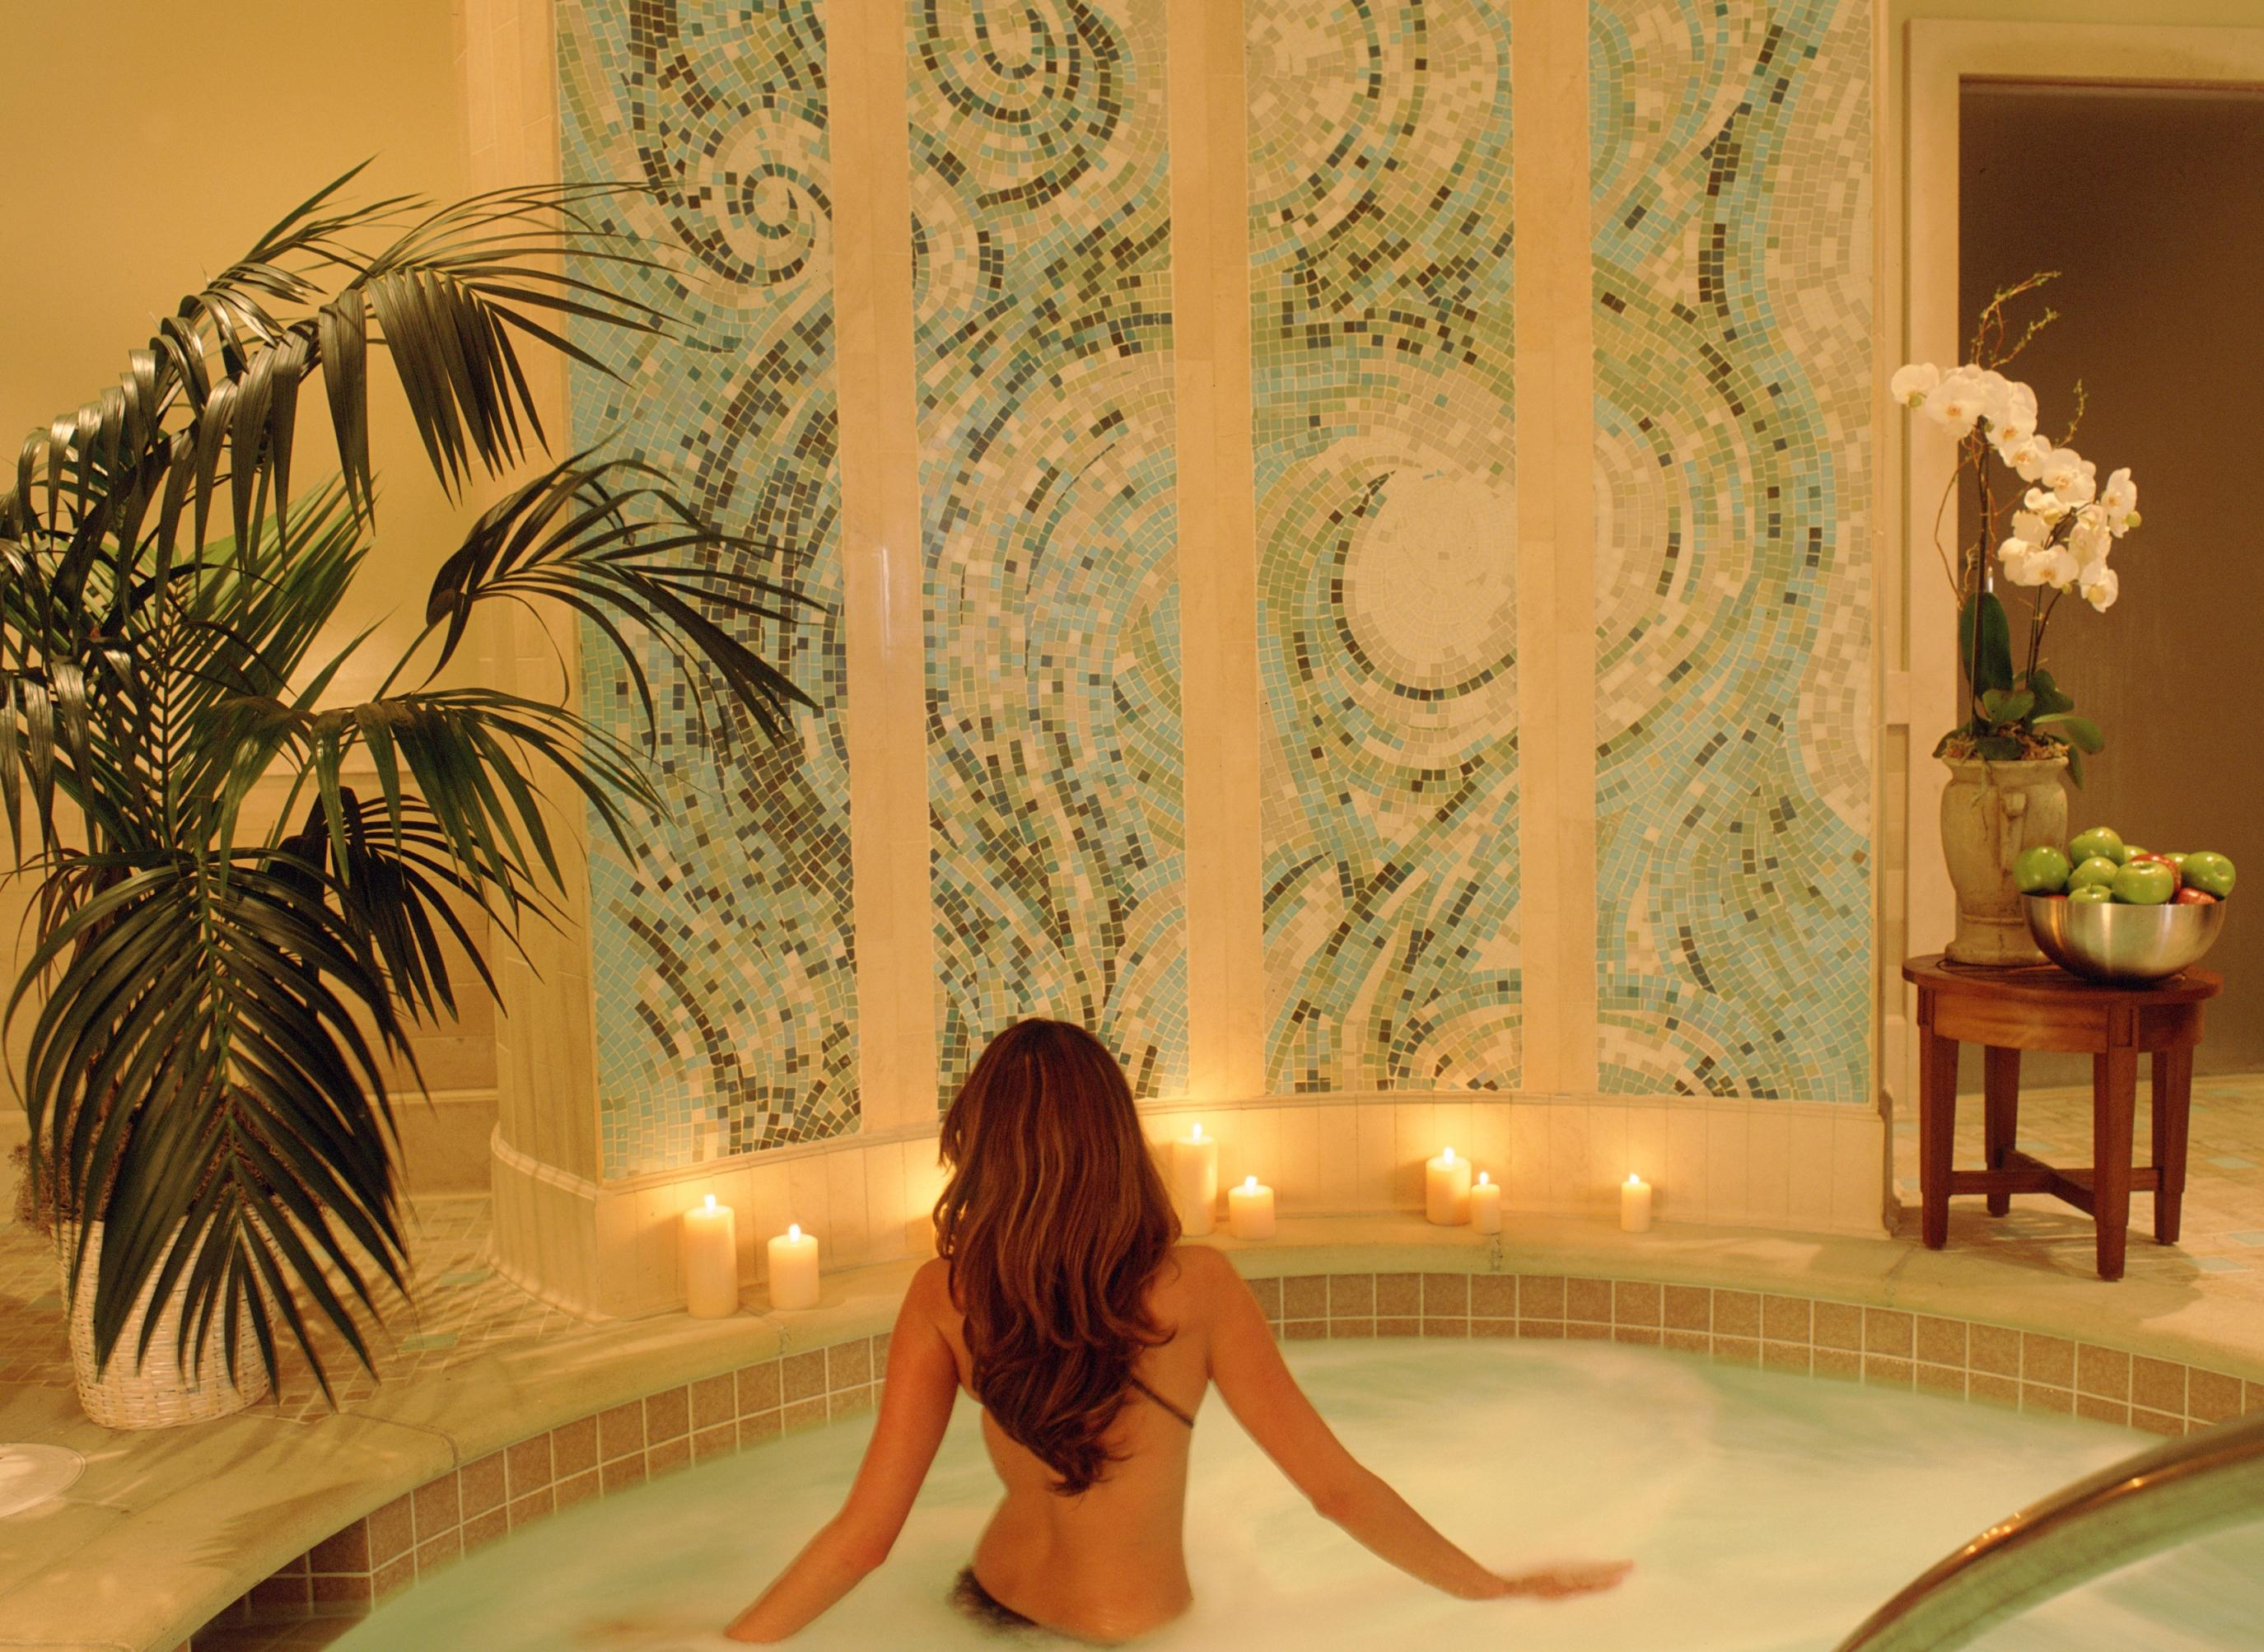 wisconsin today suites in fantasy usa tub romantic hotels mn hot